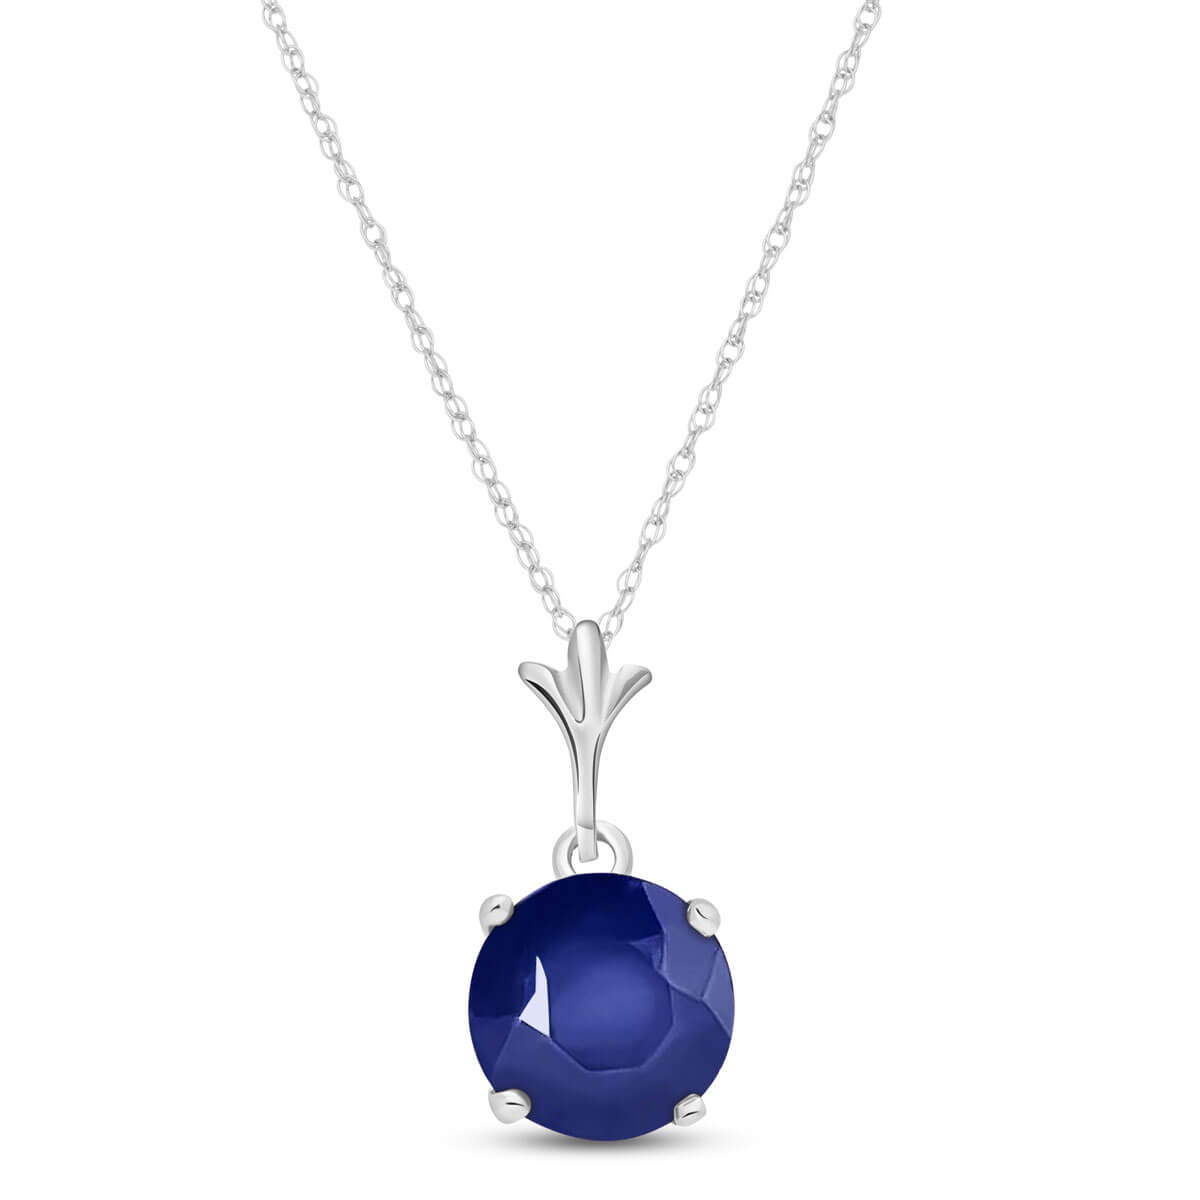 Sapphire Drop Pendant Necklace 1.65 ct in 9ct White Gold